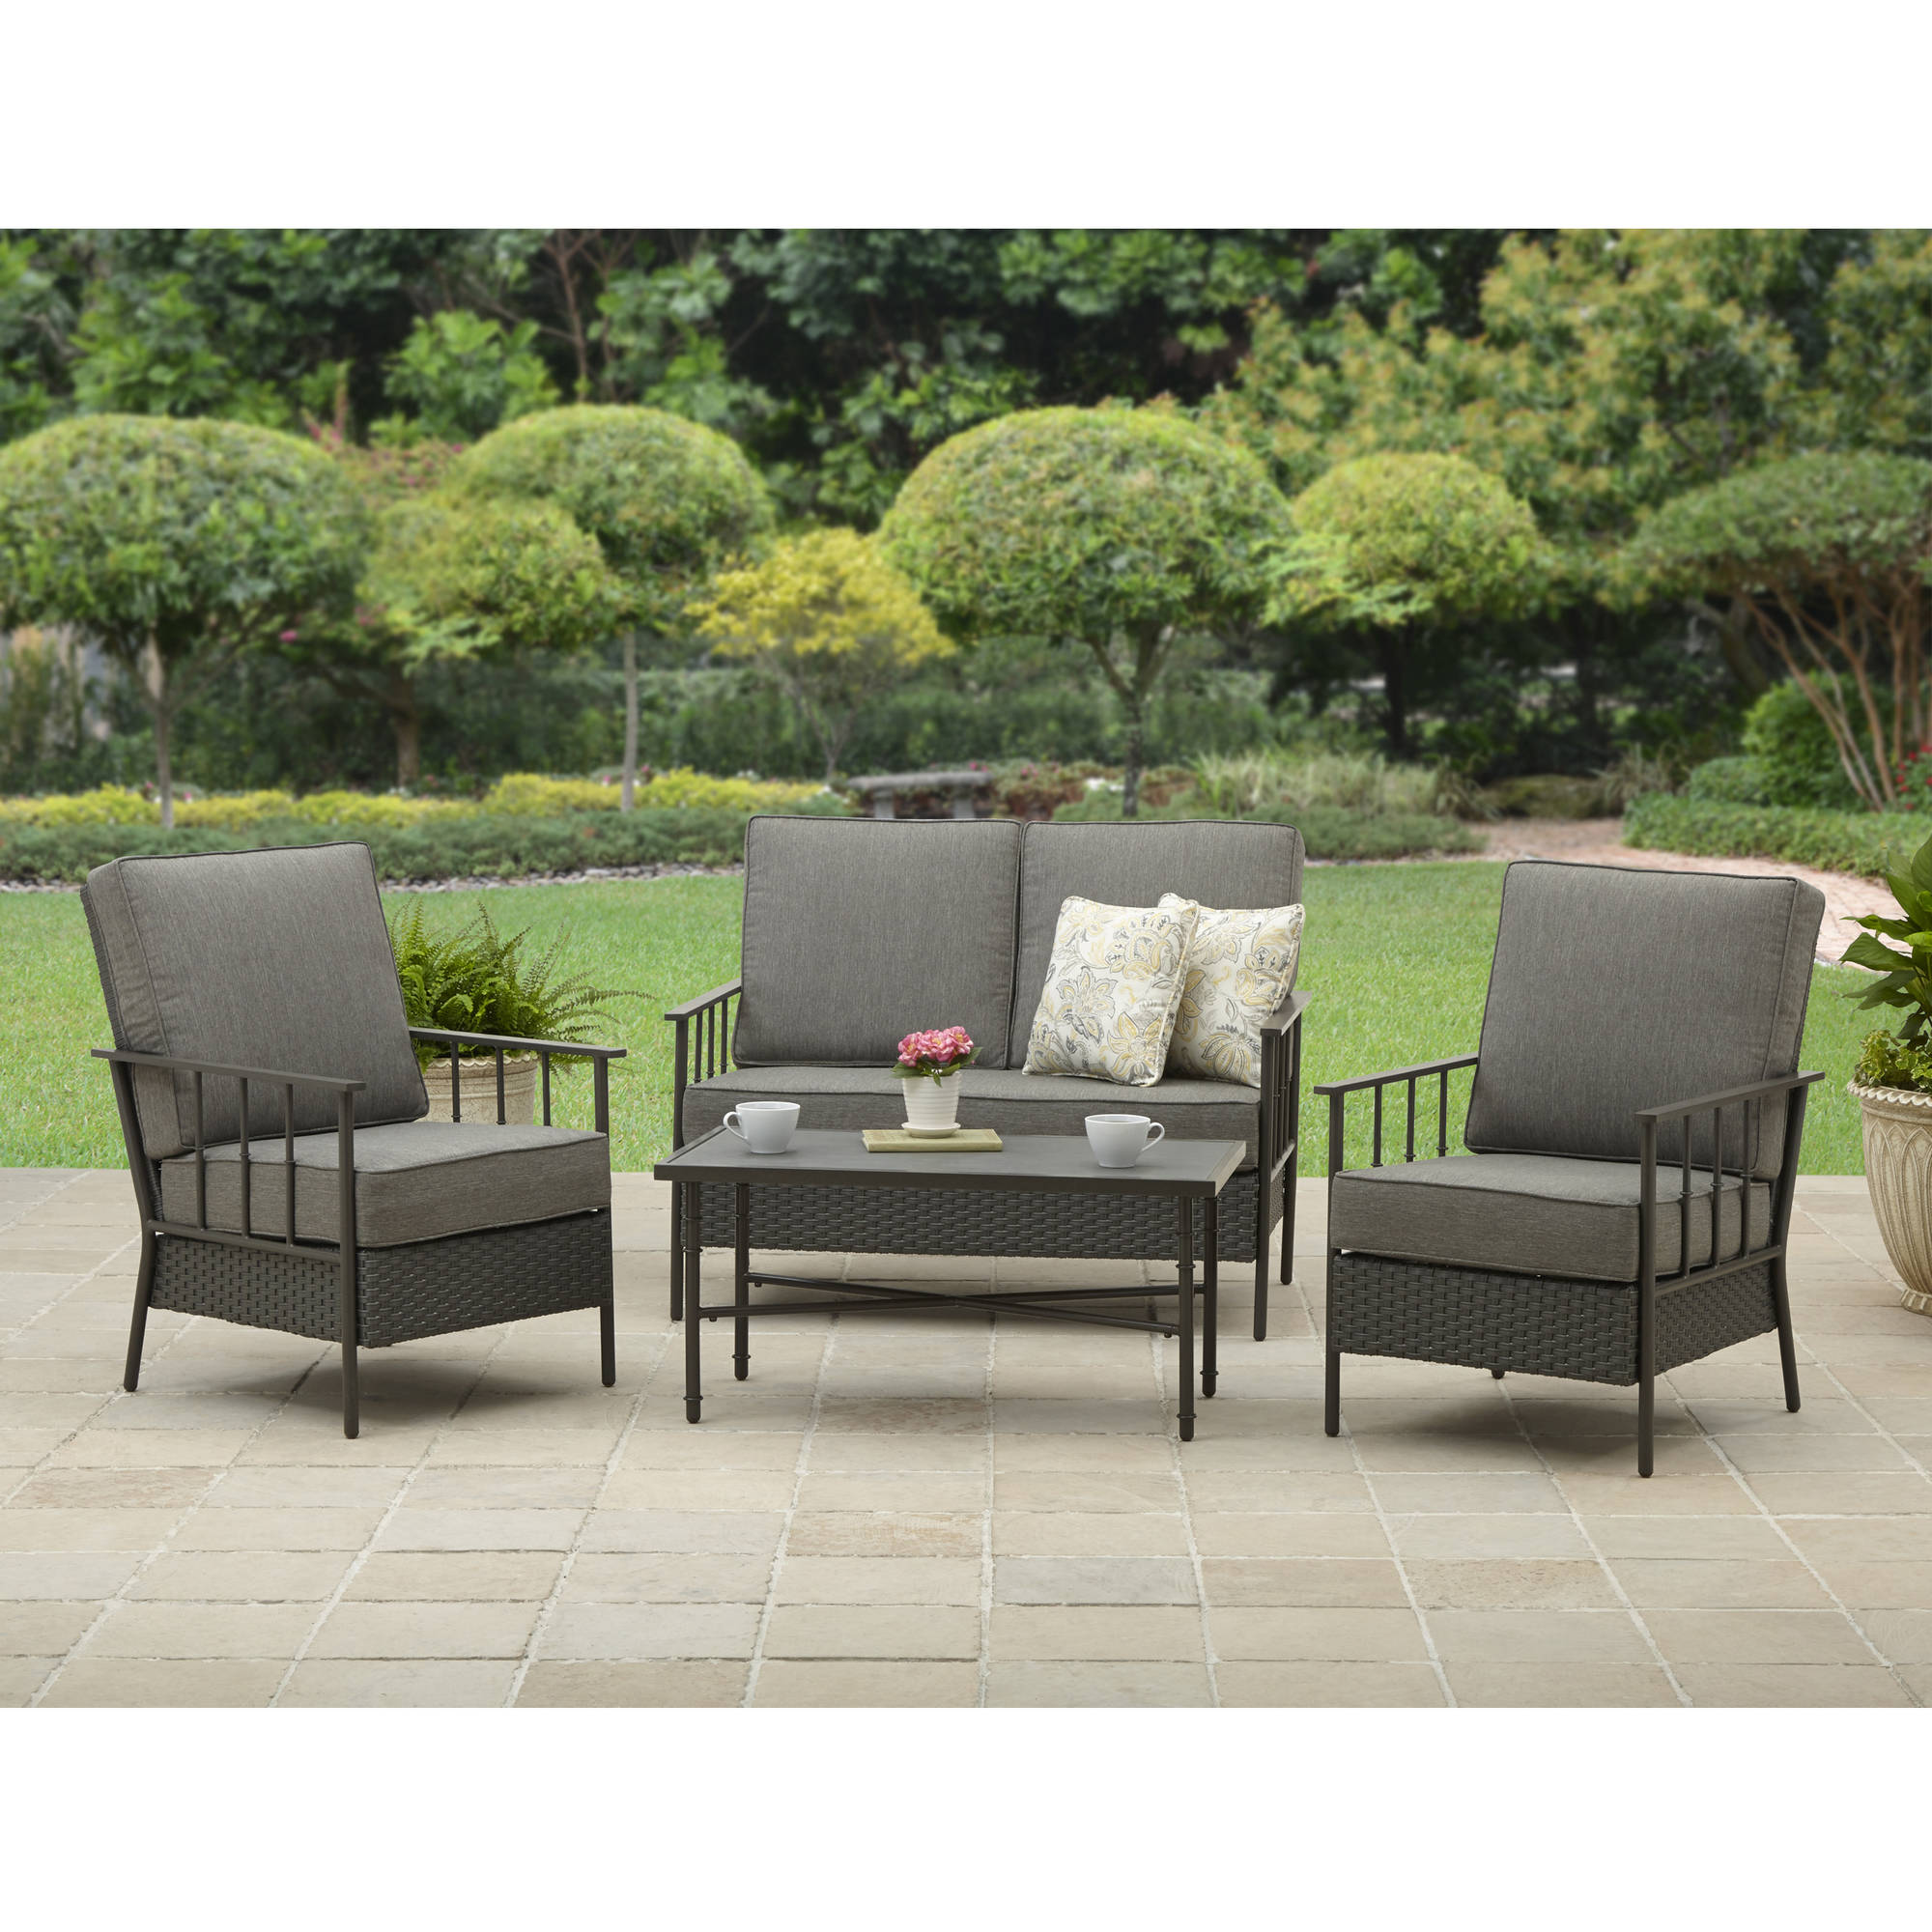 At Home Chairs Better Homes And Garden Fairwater 4 Piece Outdoor Conversation Set